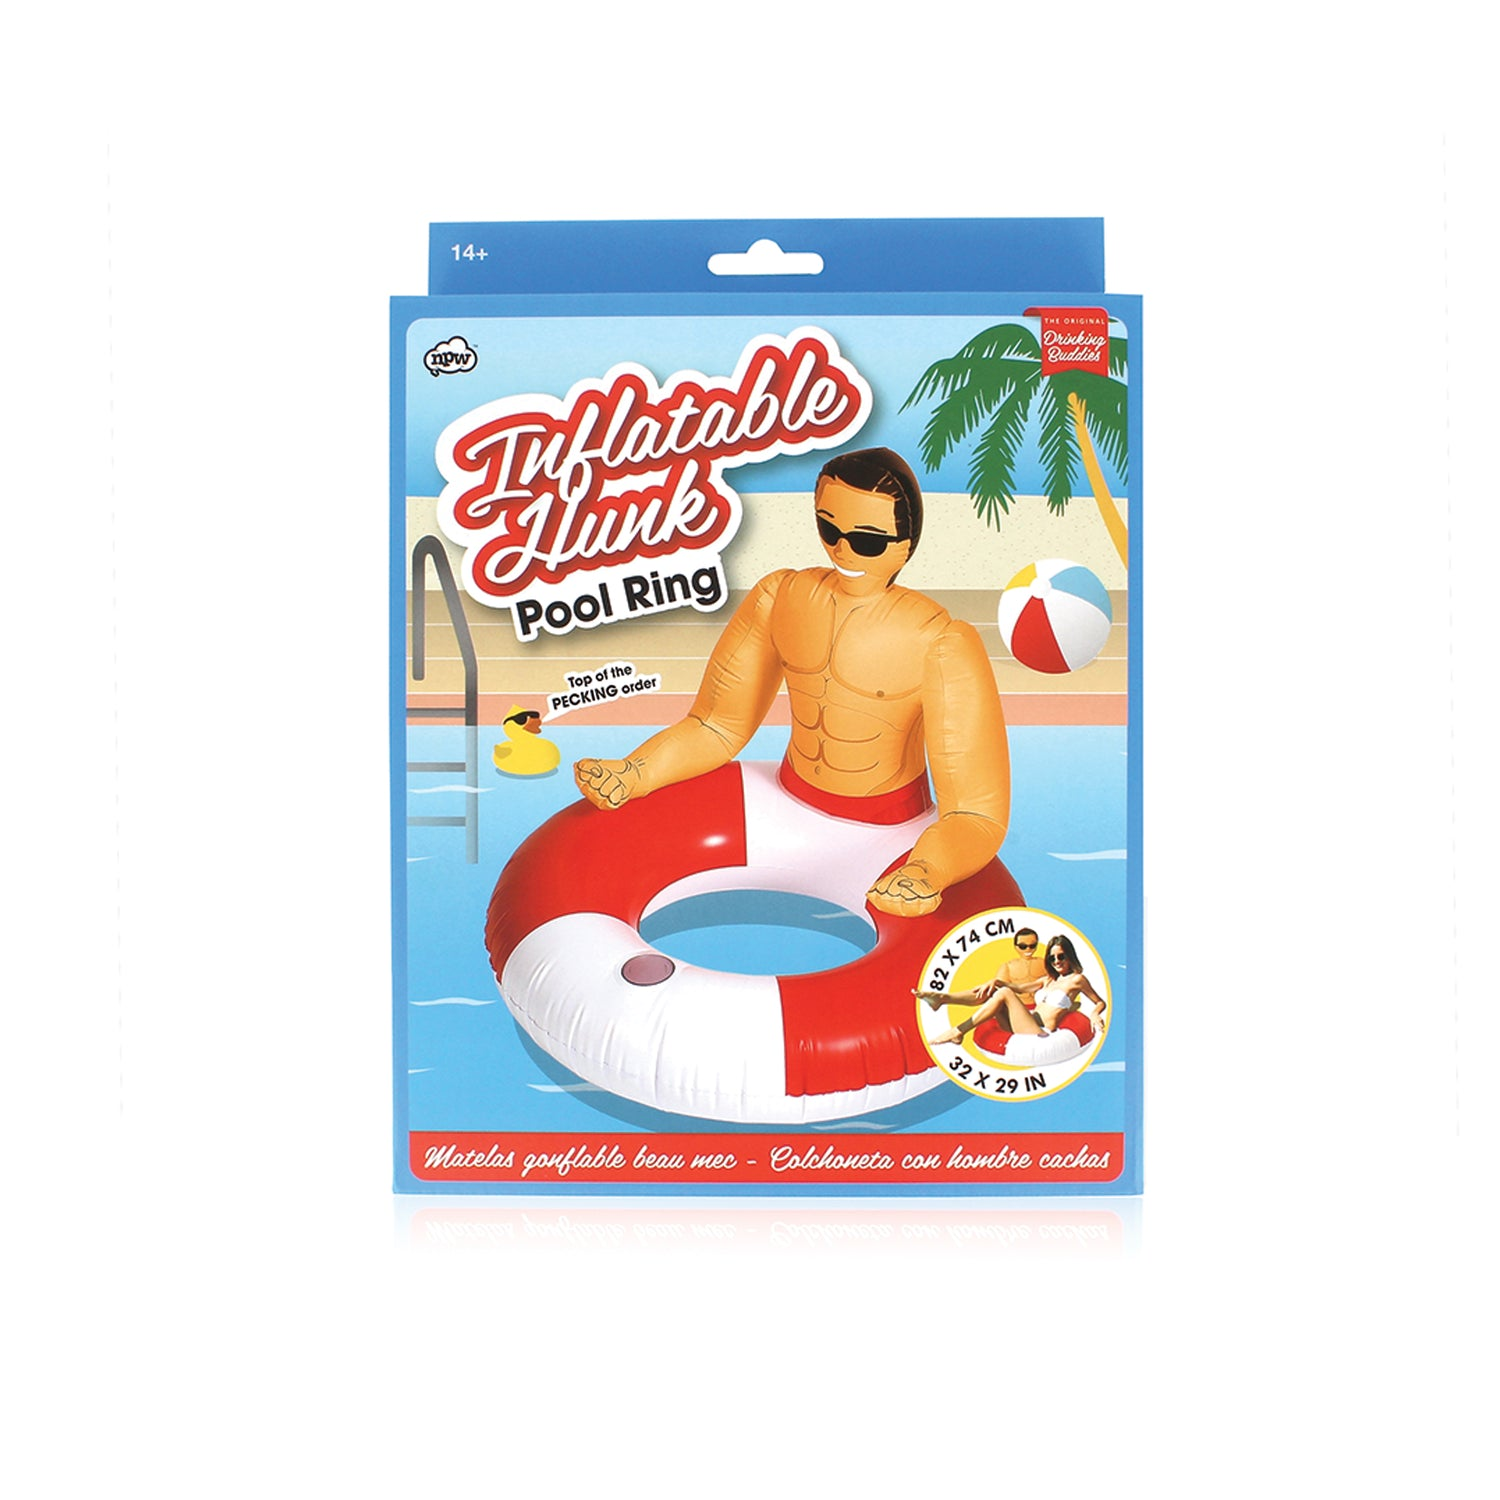 original drinking buddies, drinking buddies pool hunk ring, NPW53265, pool float, inflatable toy